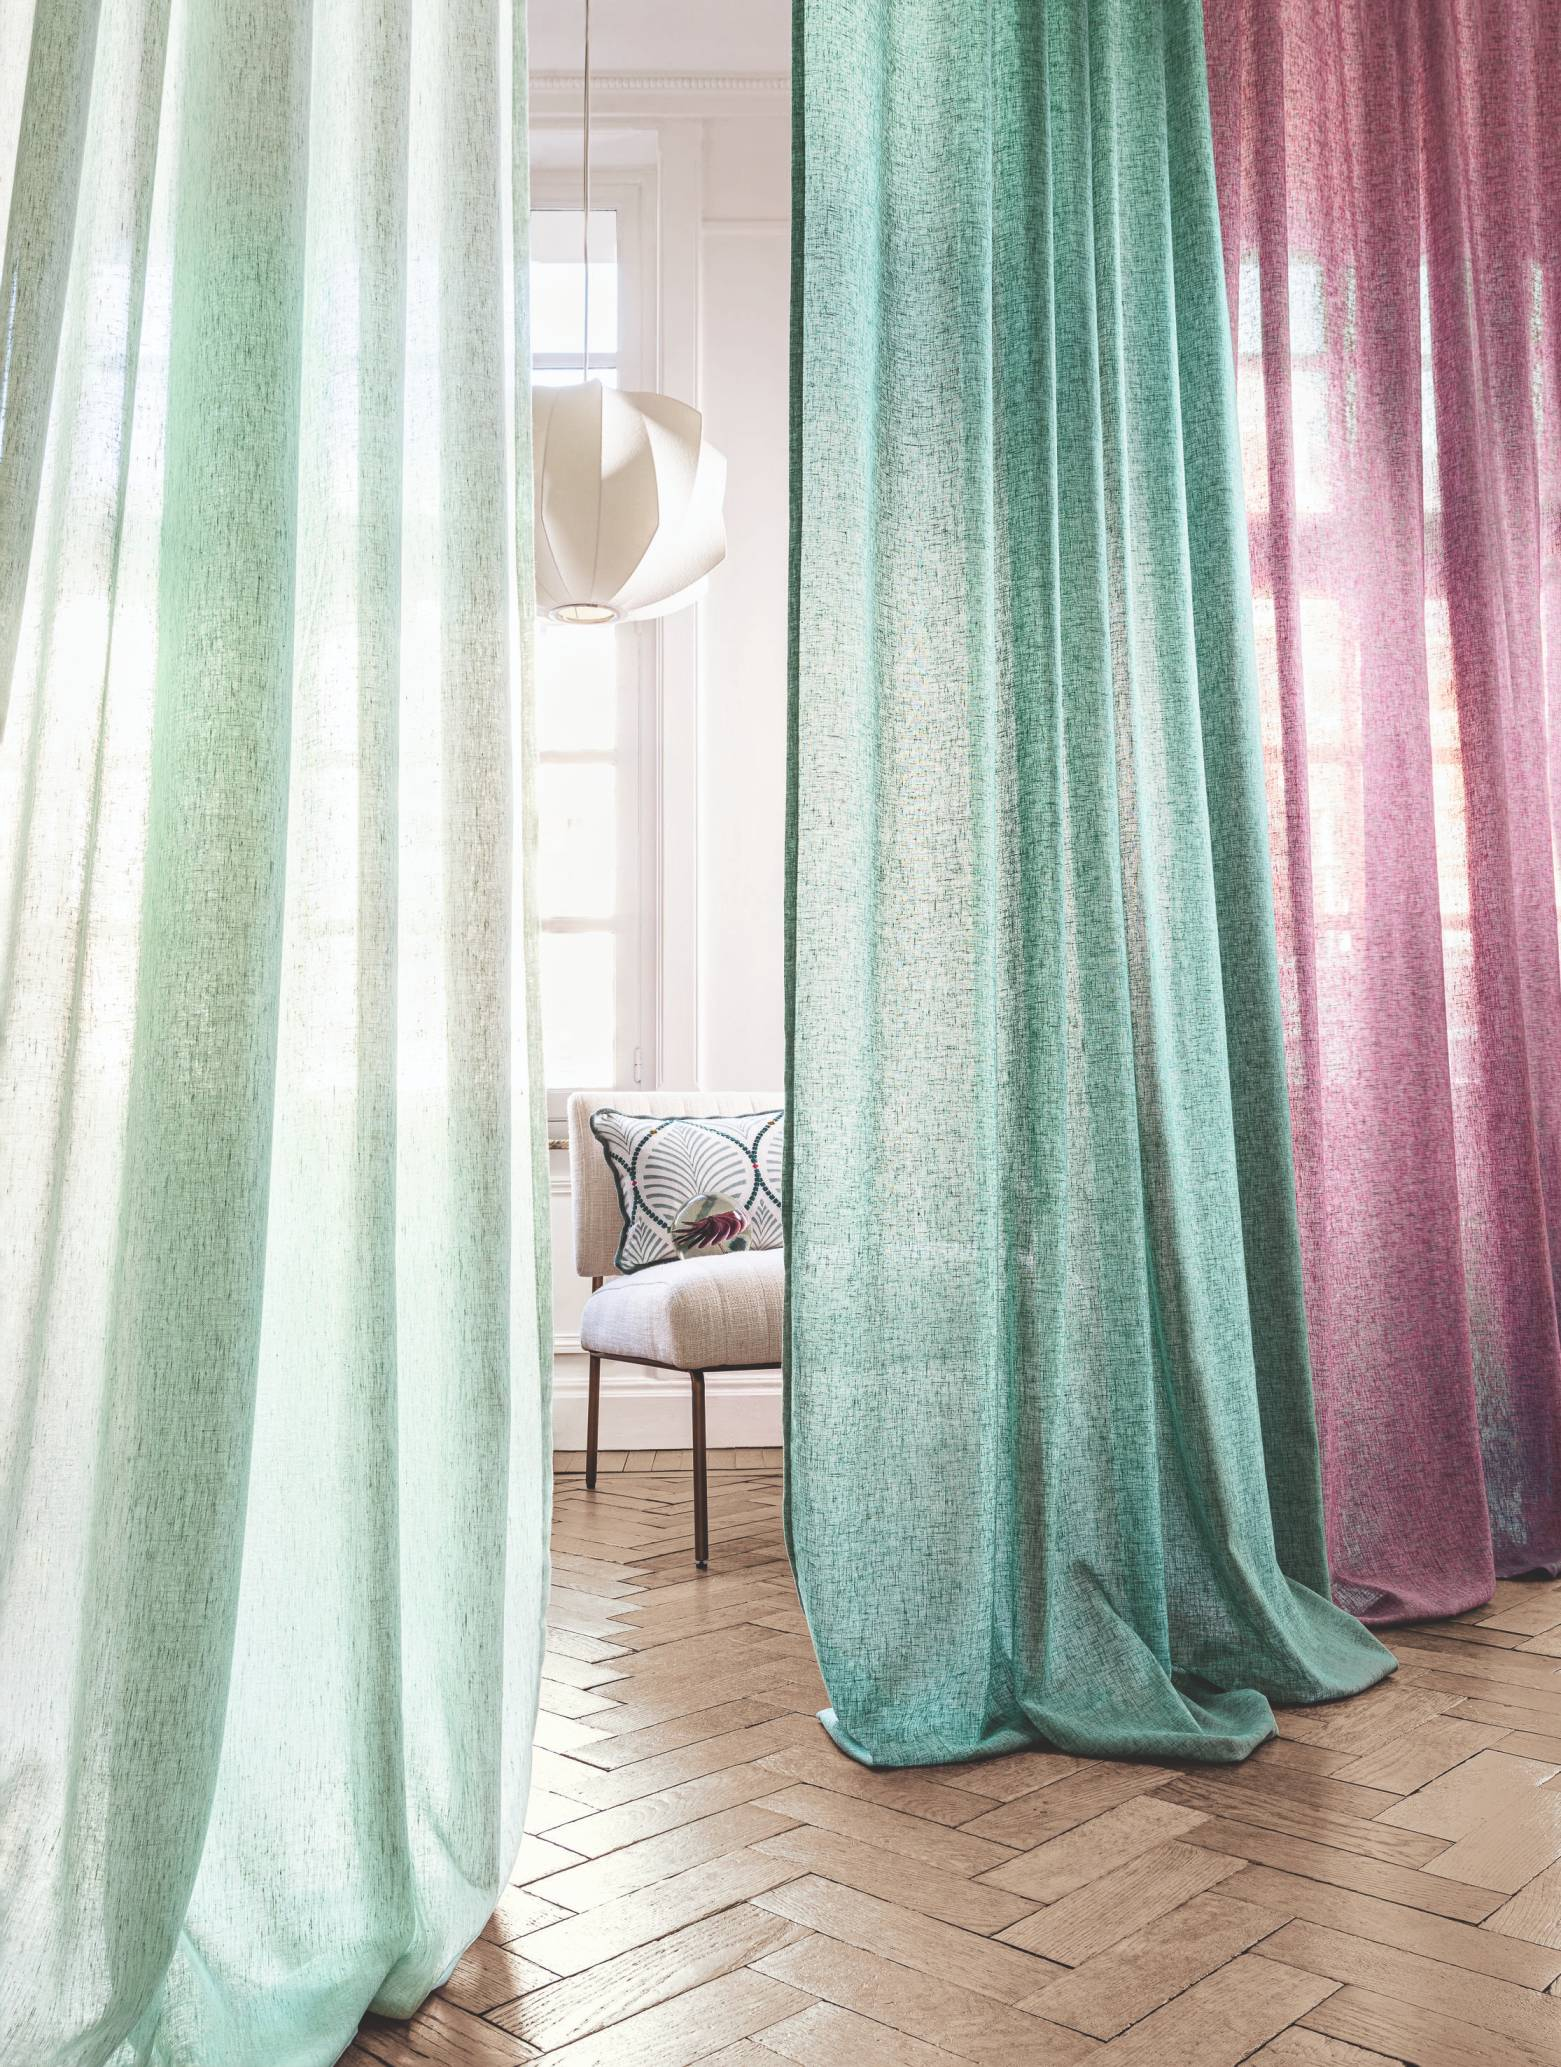 CAMENGO_PERLE-PERLCAM-ambiance Collection - Perle Fabric